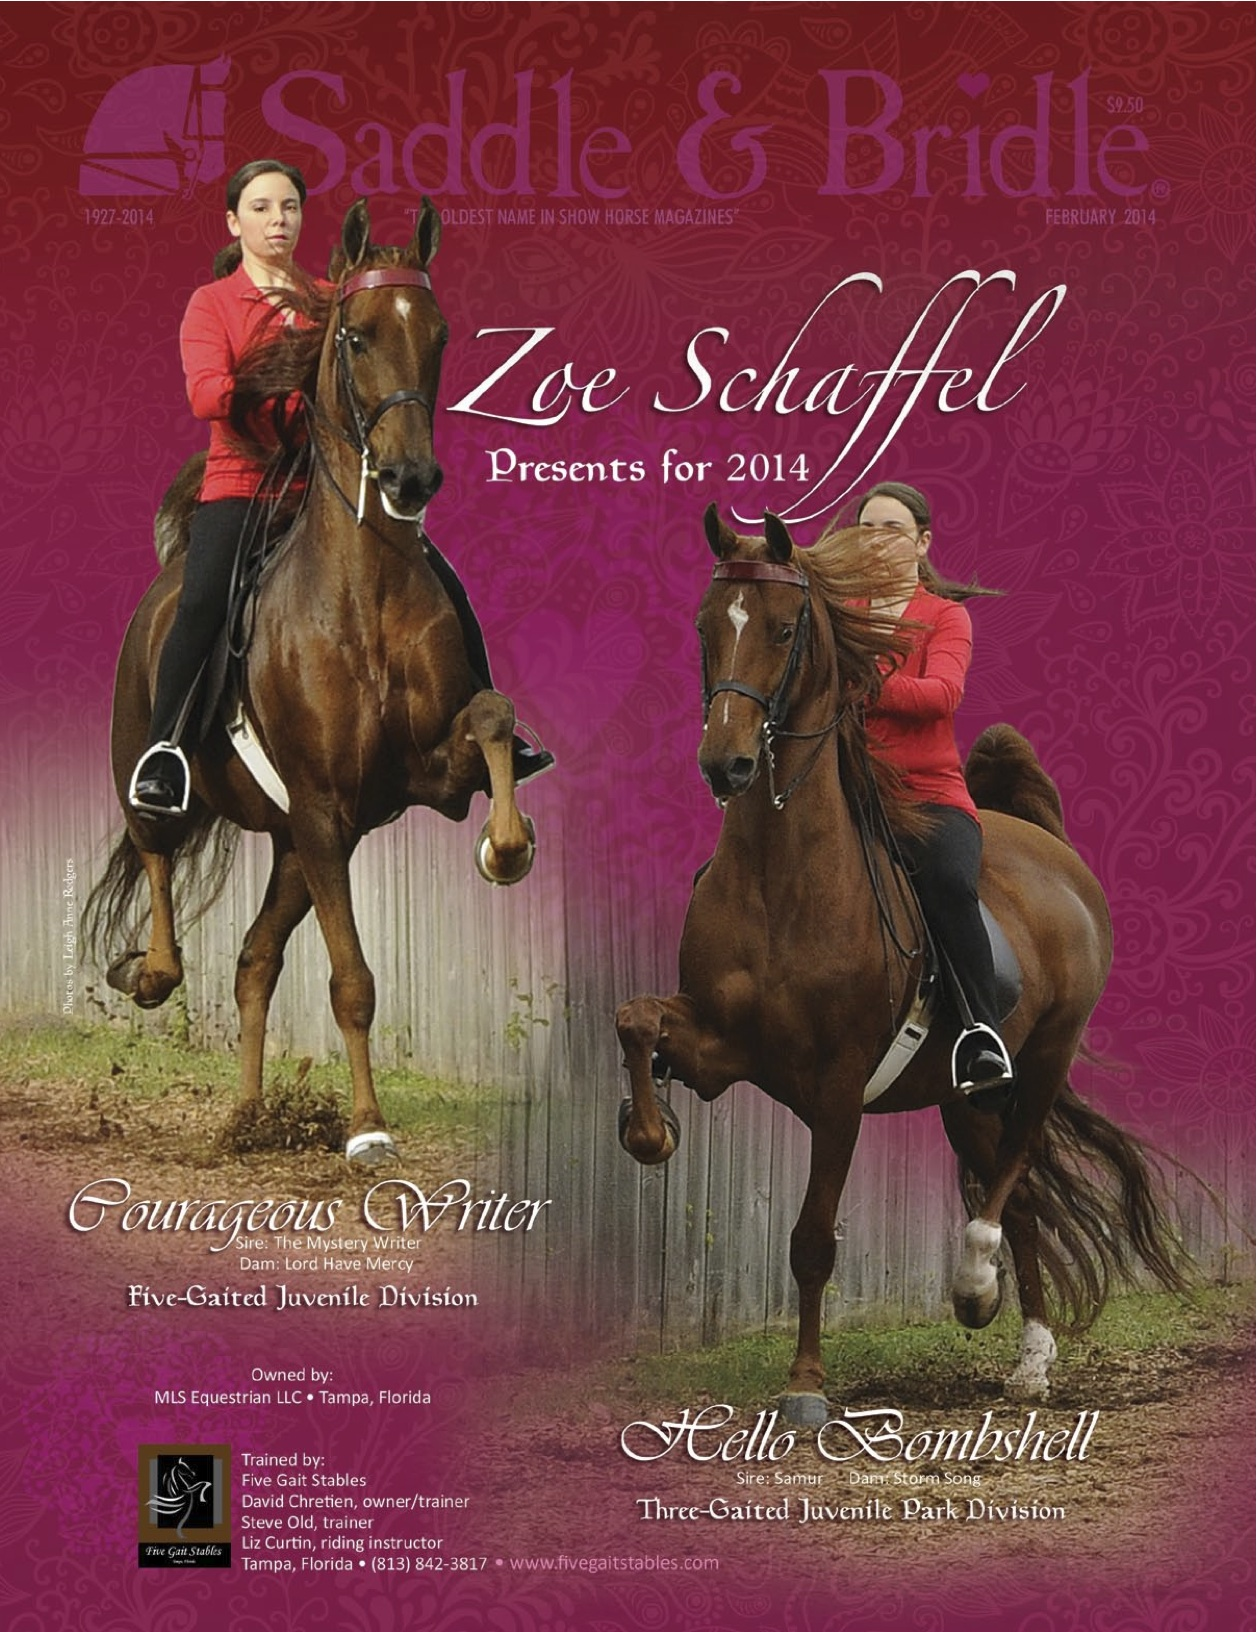 Many people choose to advertise their horse businesses in Saddle & Bridle.